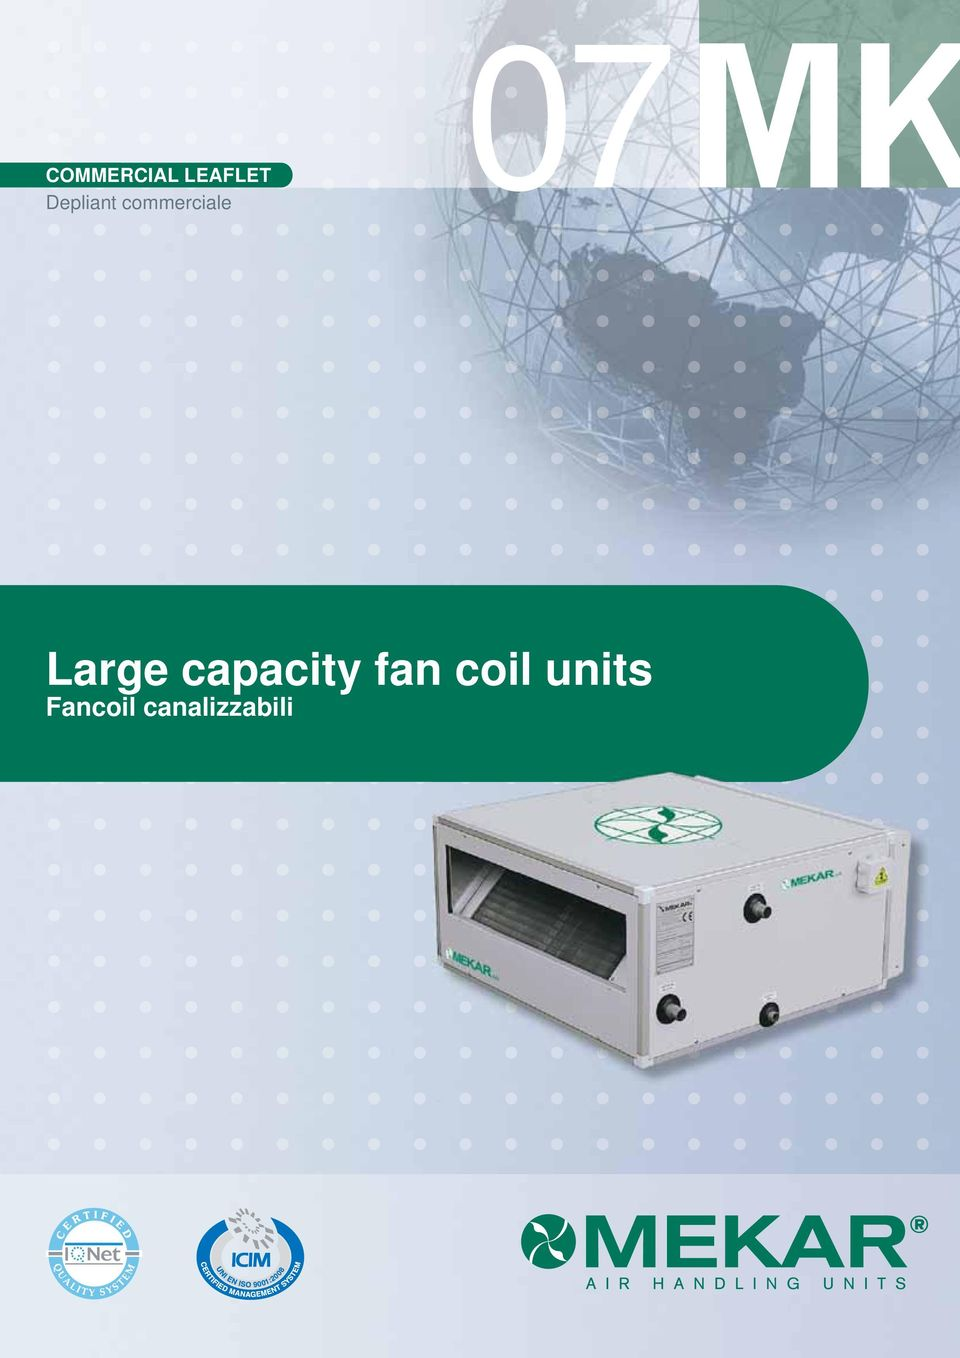 Large capacity fan coil